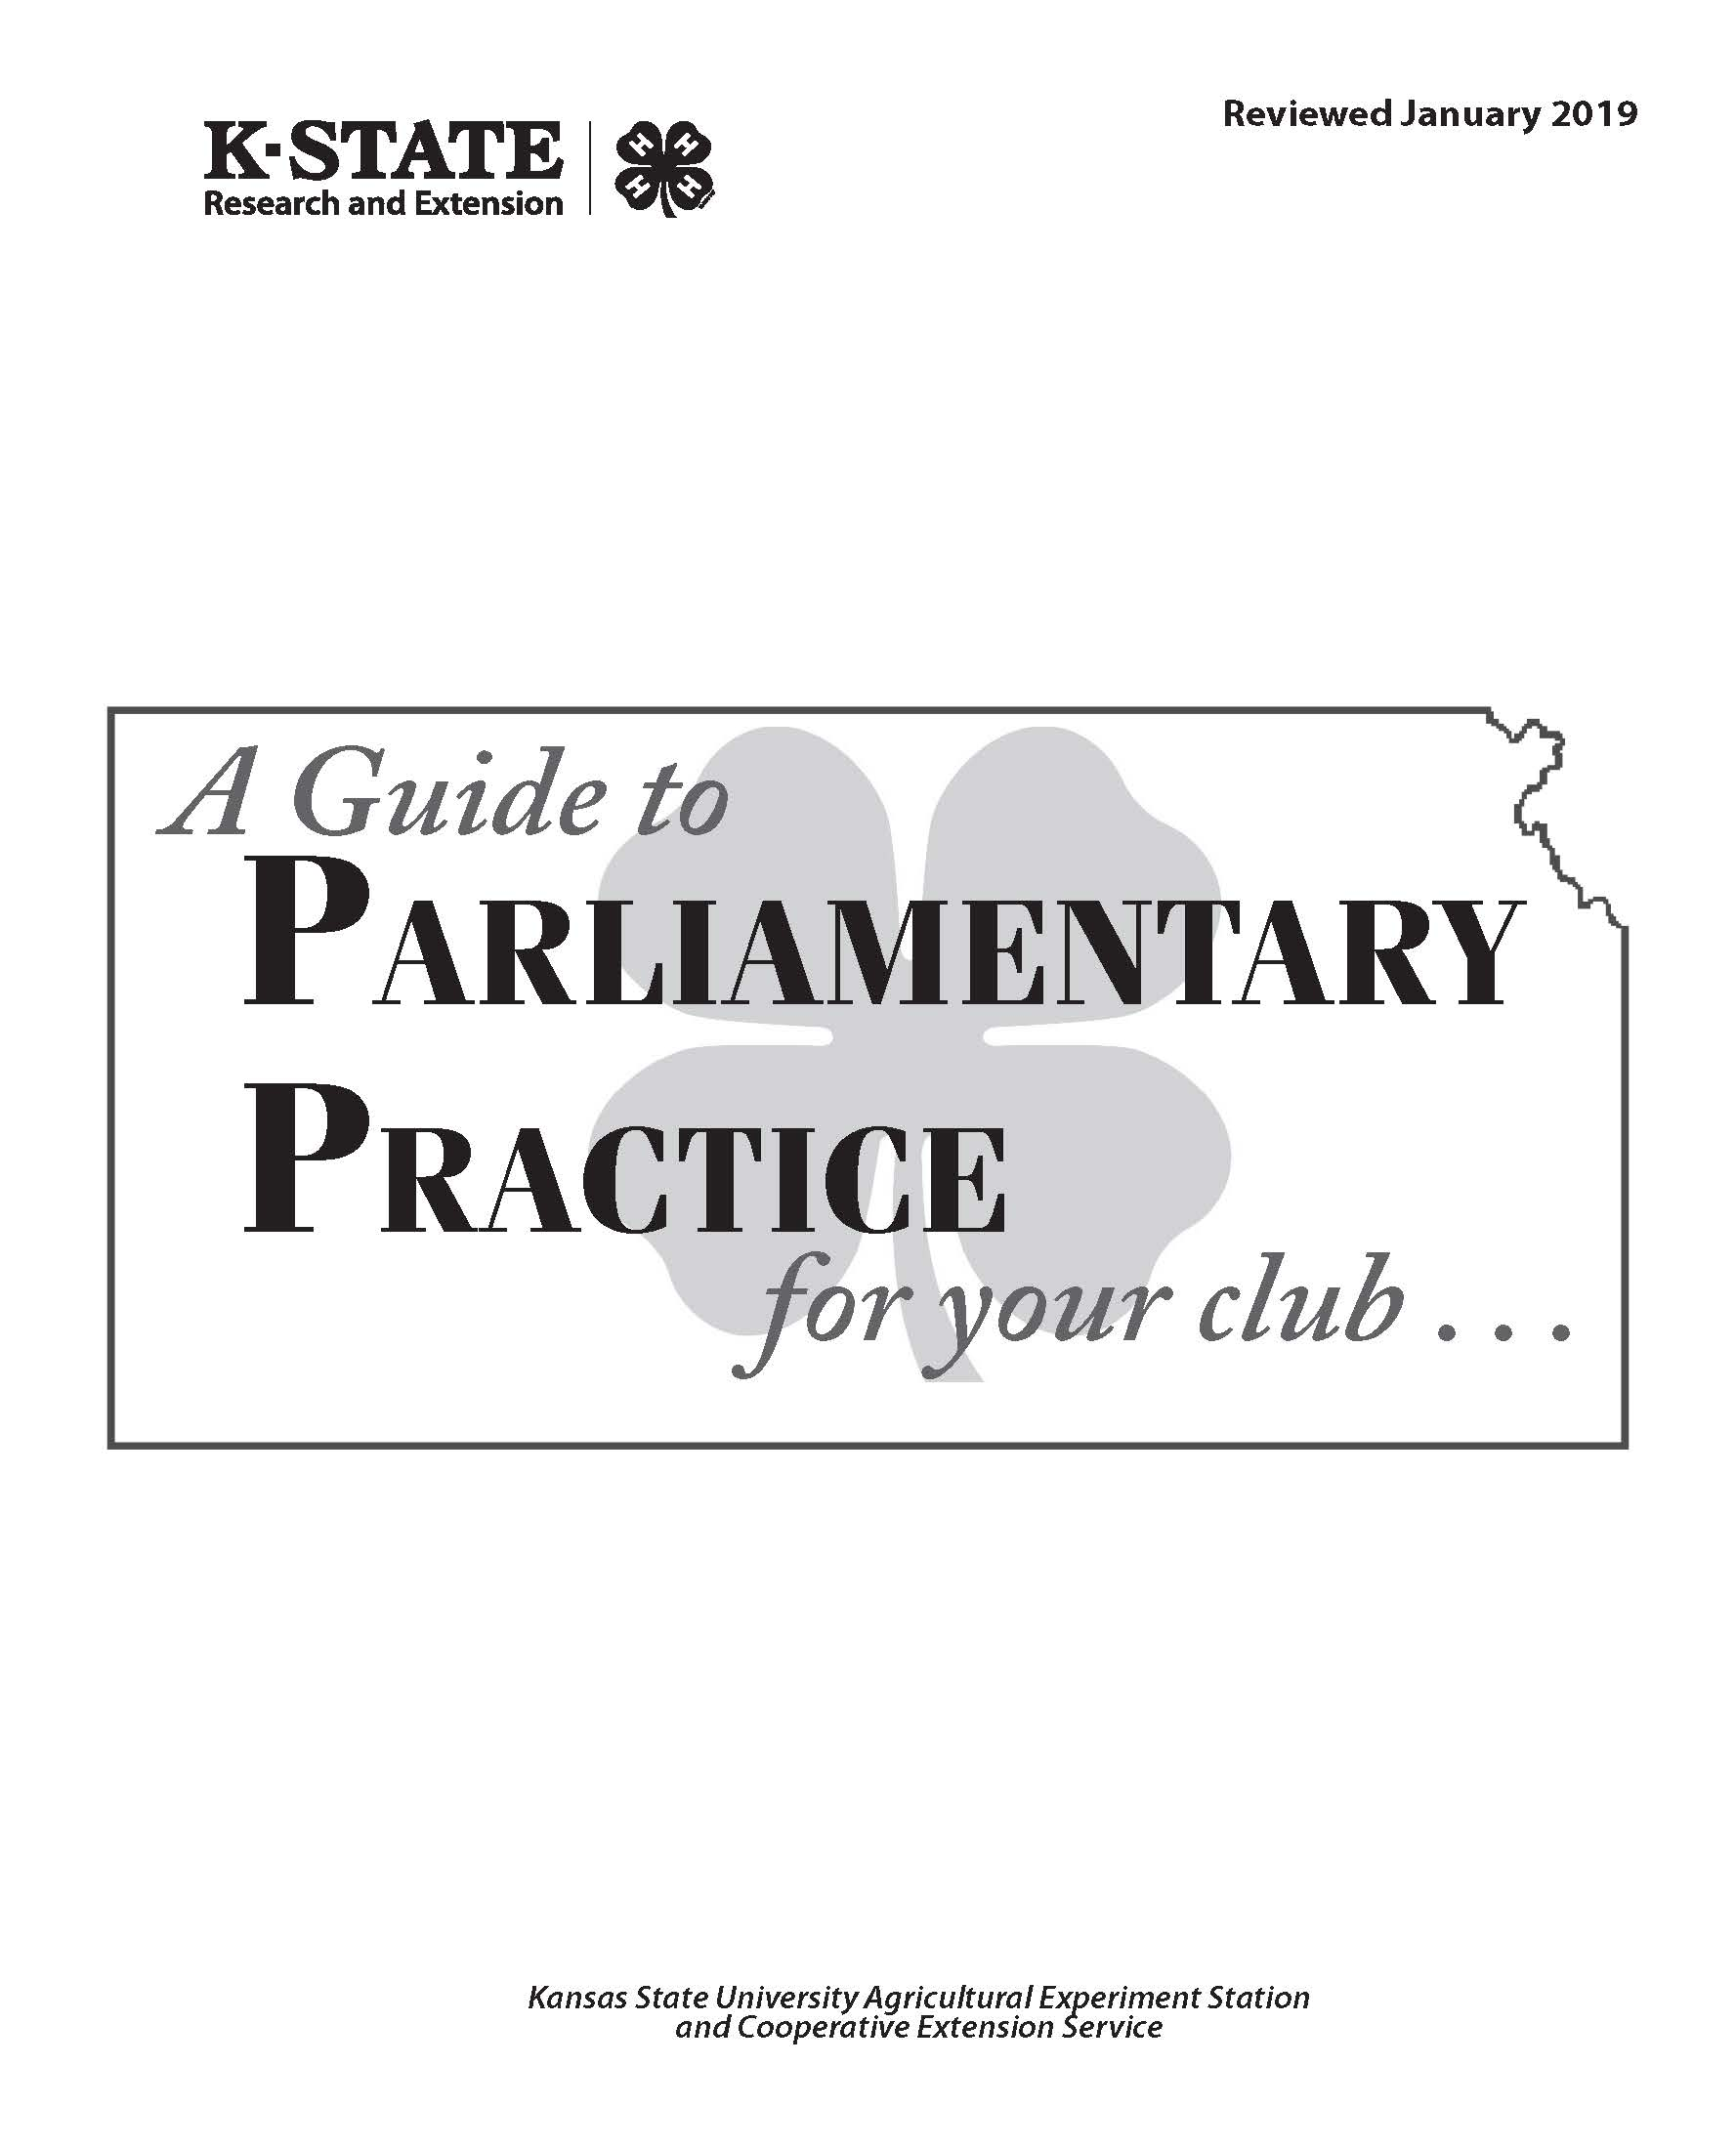 A Guide to Parlimentary Practices